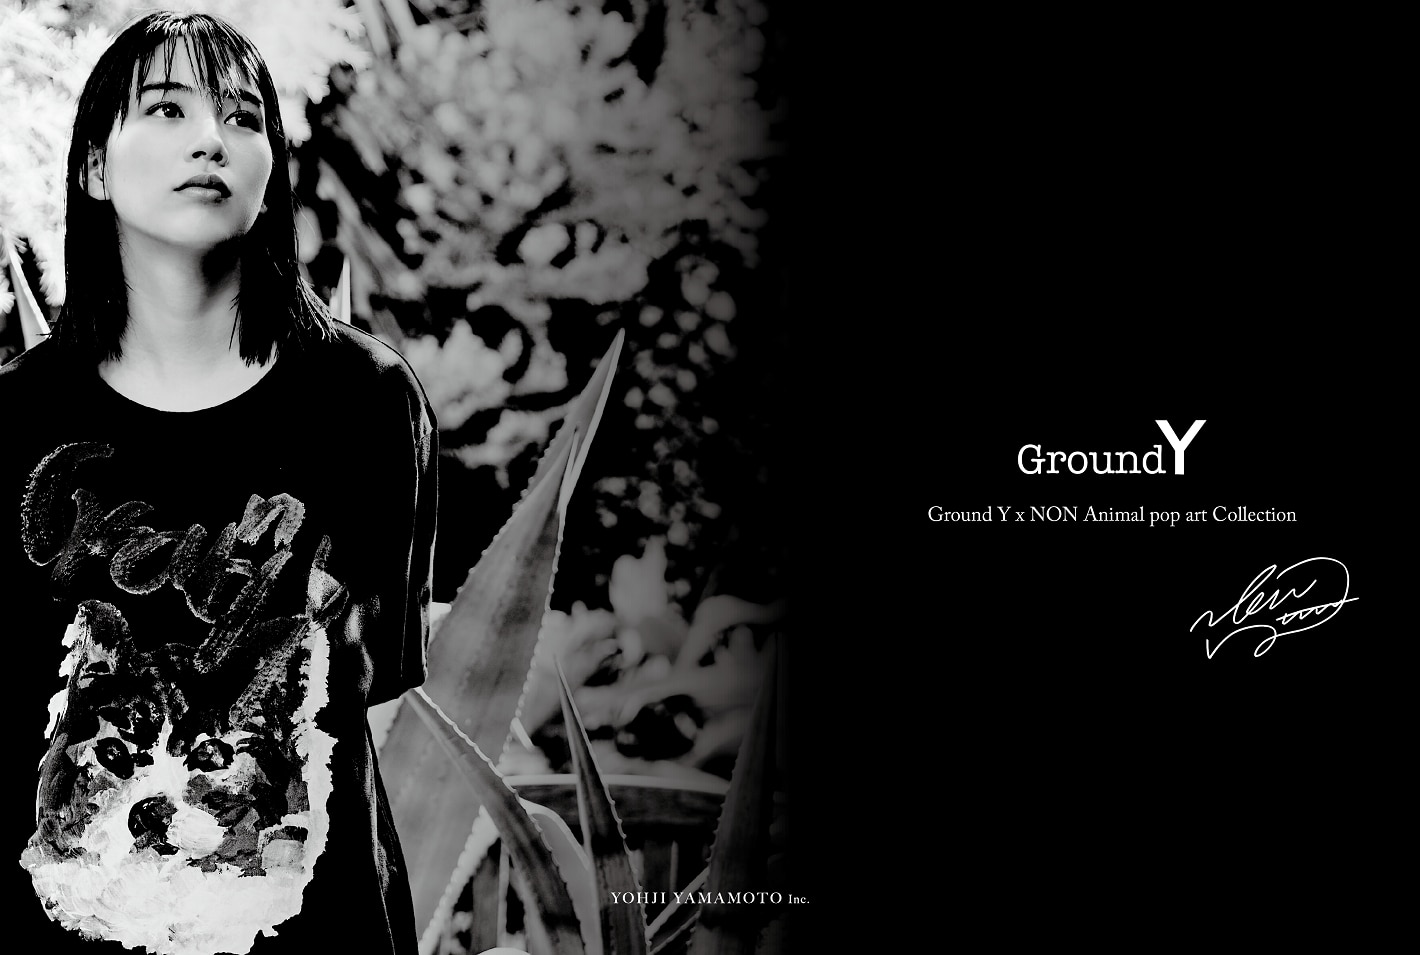 Ground Y × NON Animal pop art Collection